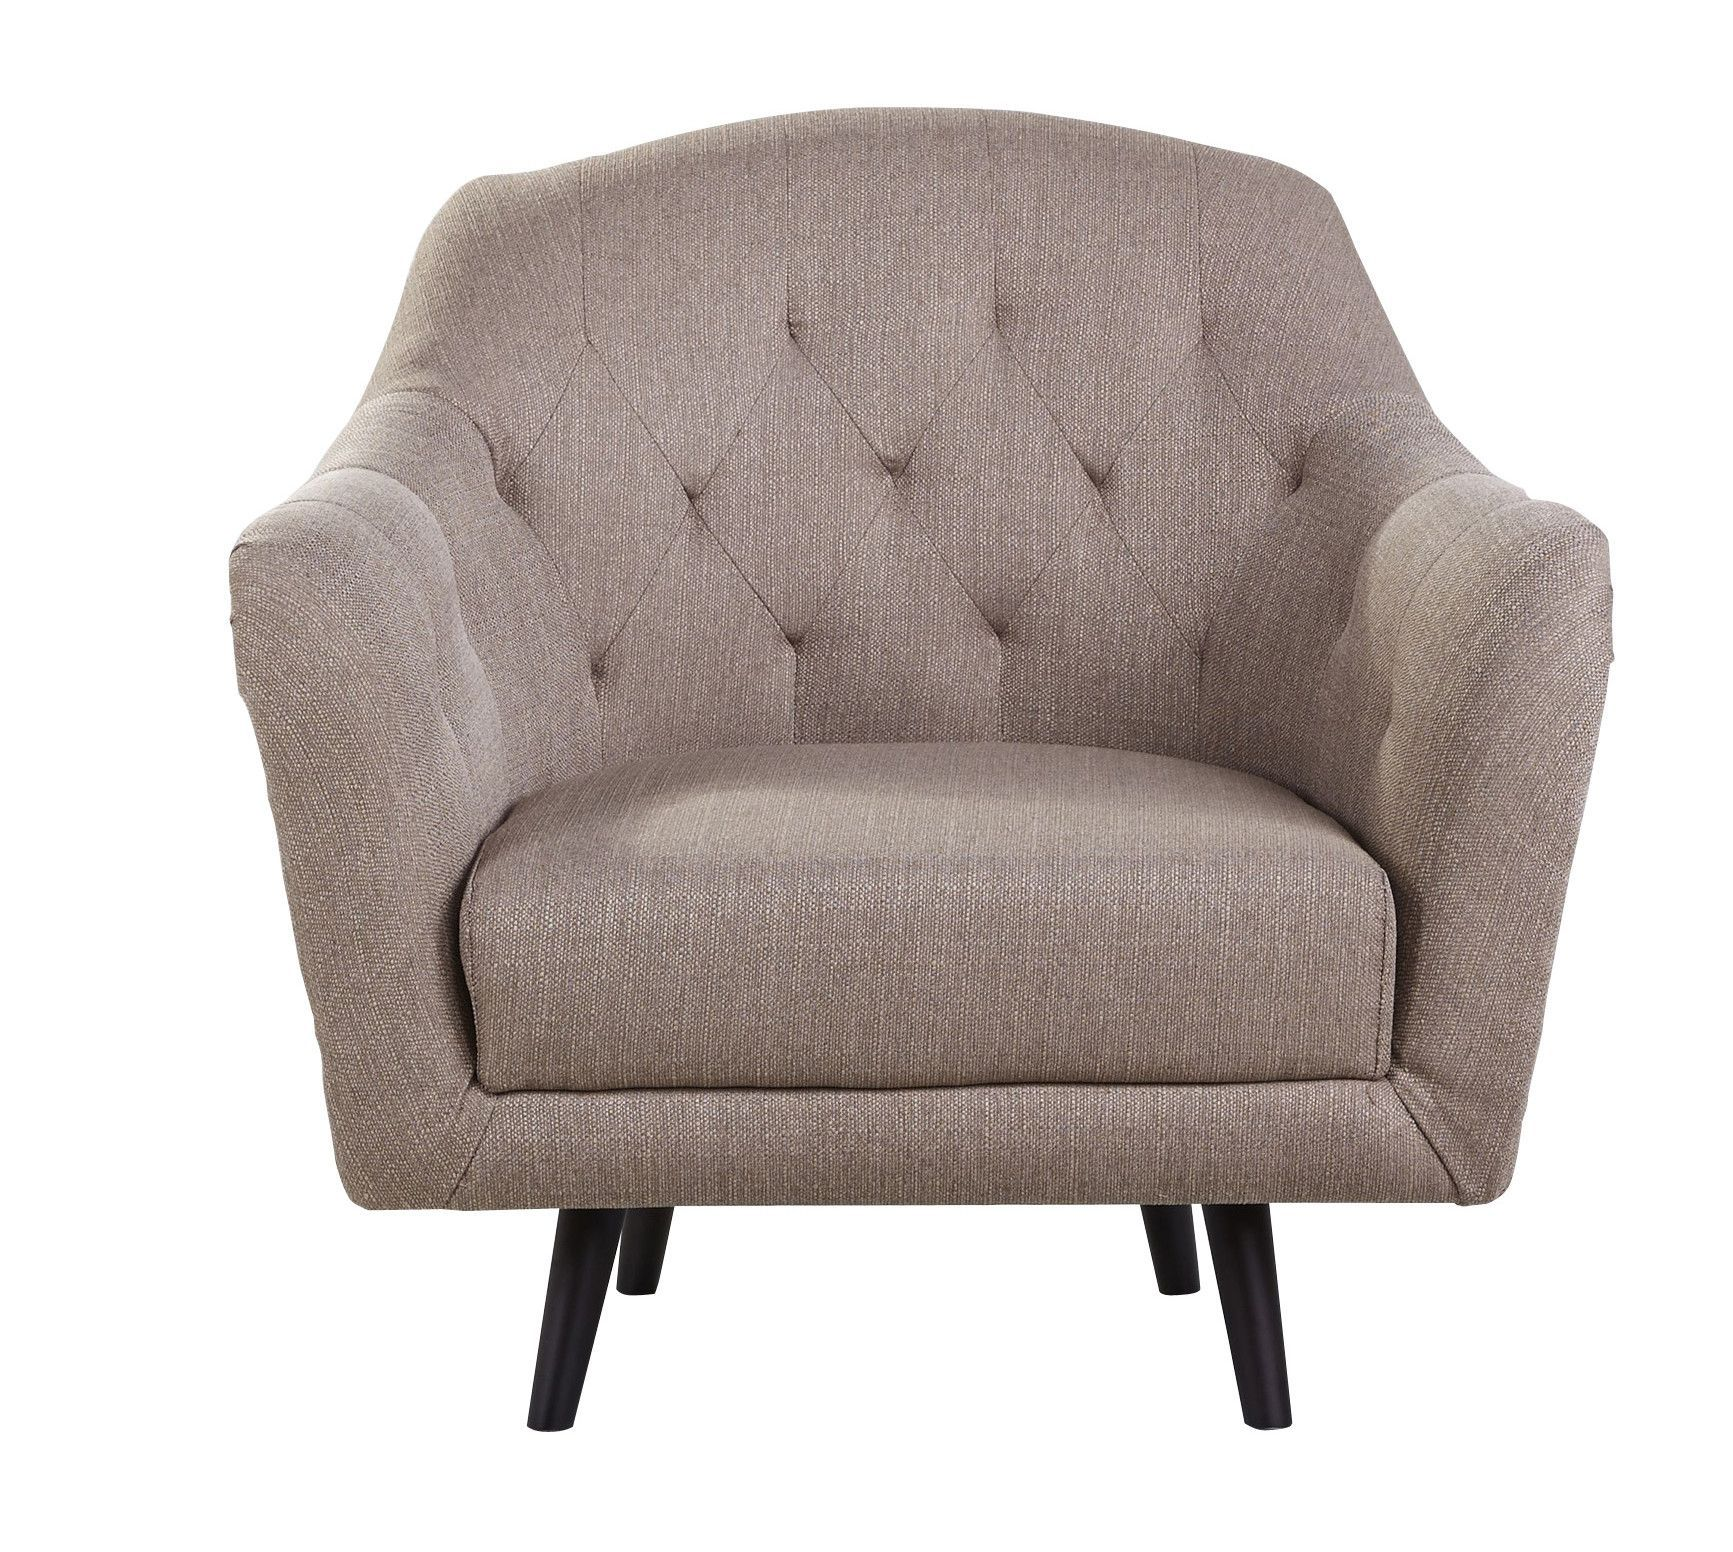 Aurora Armchair Accent chairs for living room, Fabric